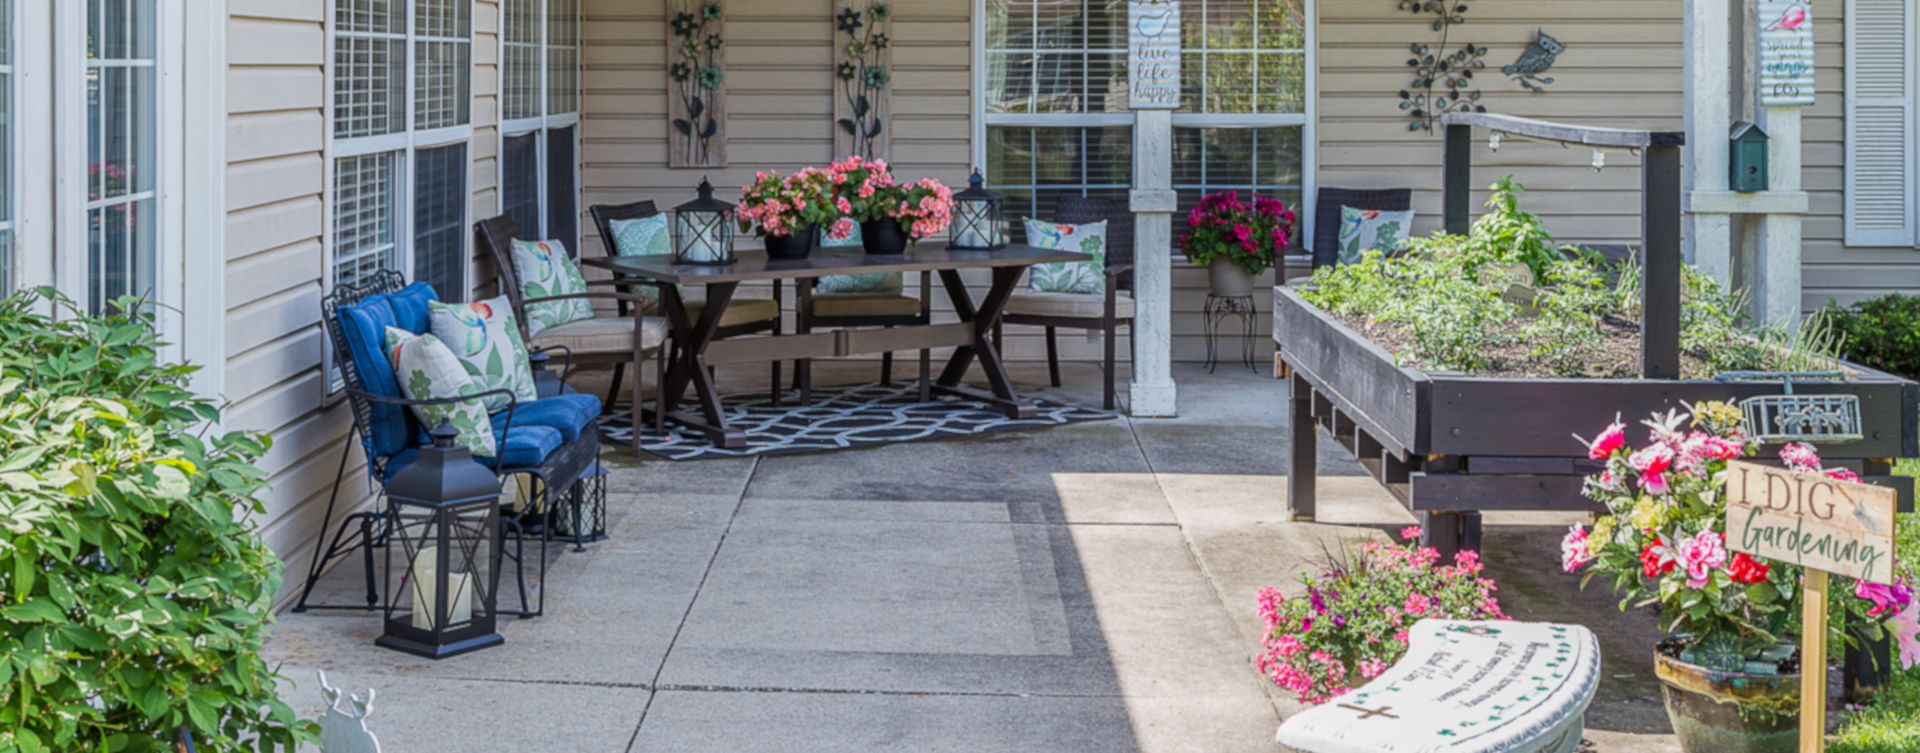 Enjoy the outdoors in a whole new light by stepping into our secure courtyard at Bickford of Urbandale